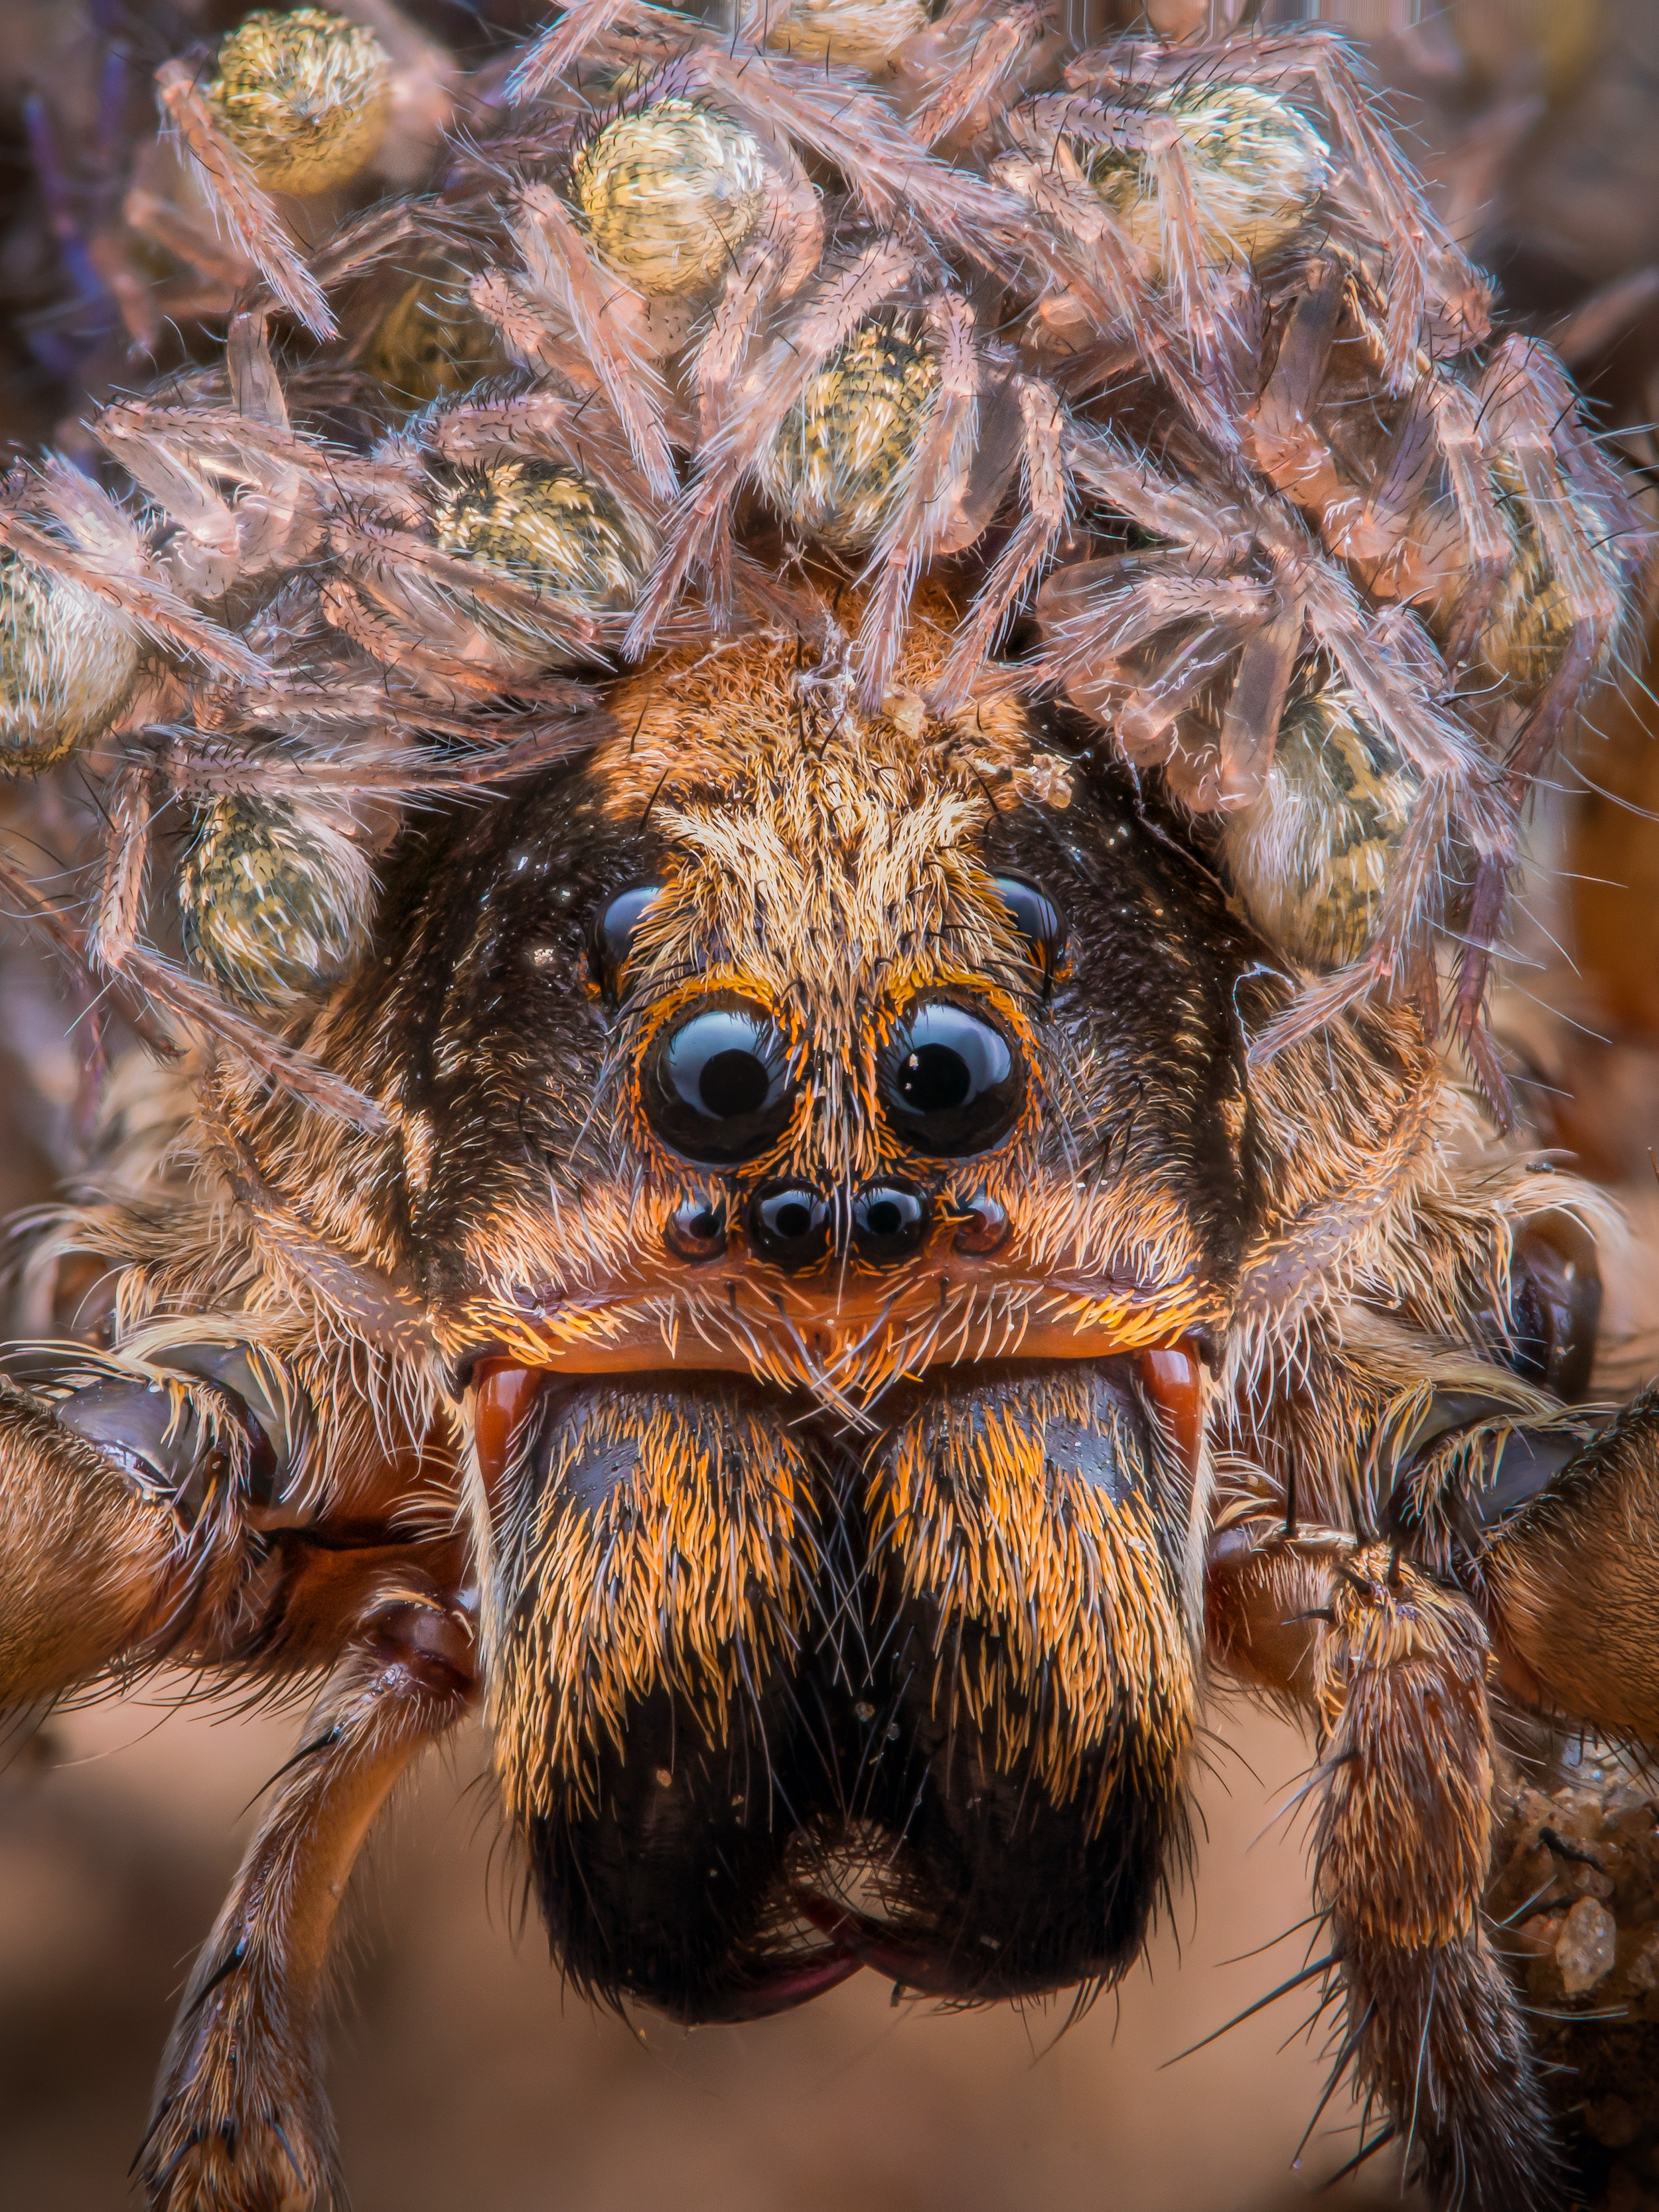 A wolf spider mother covered in baby spiders is pictured up close, her multi-eye head covered in tiny little versions